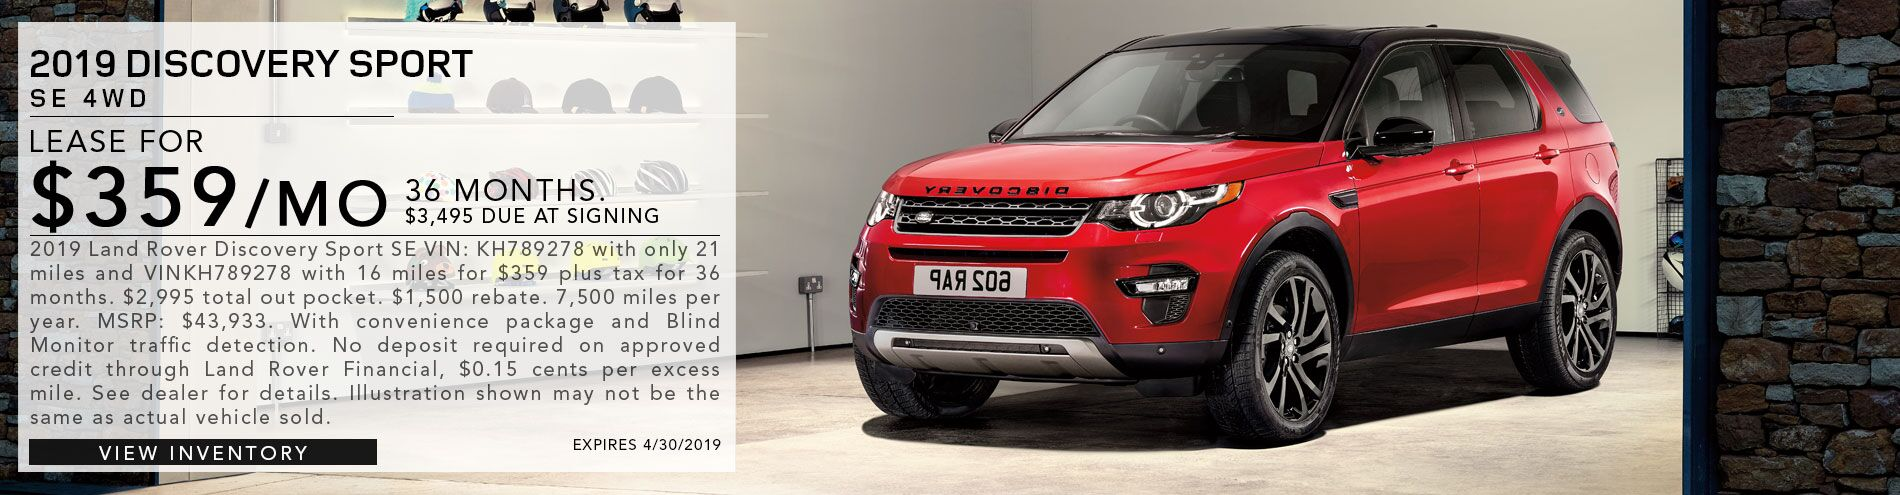 2019 Discovery Sport SE 4WD